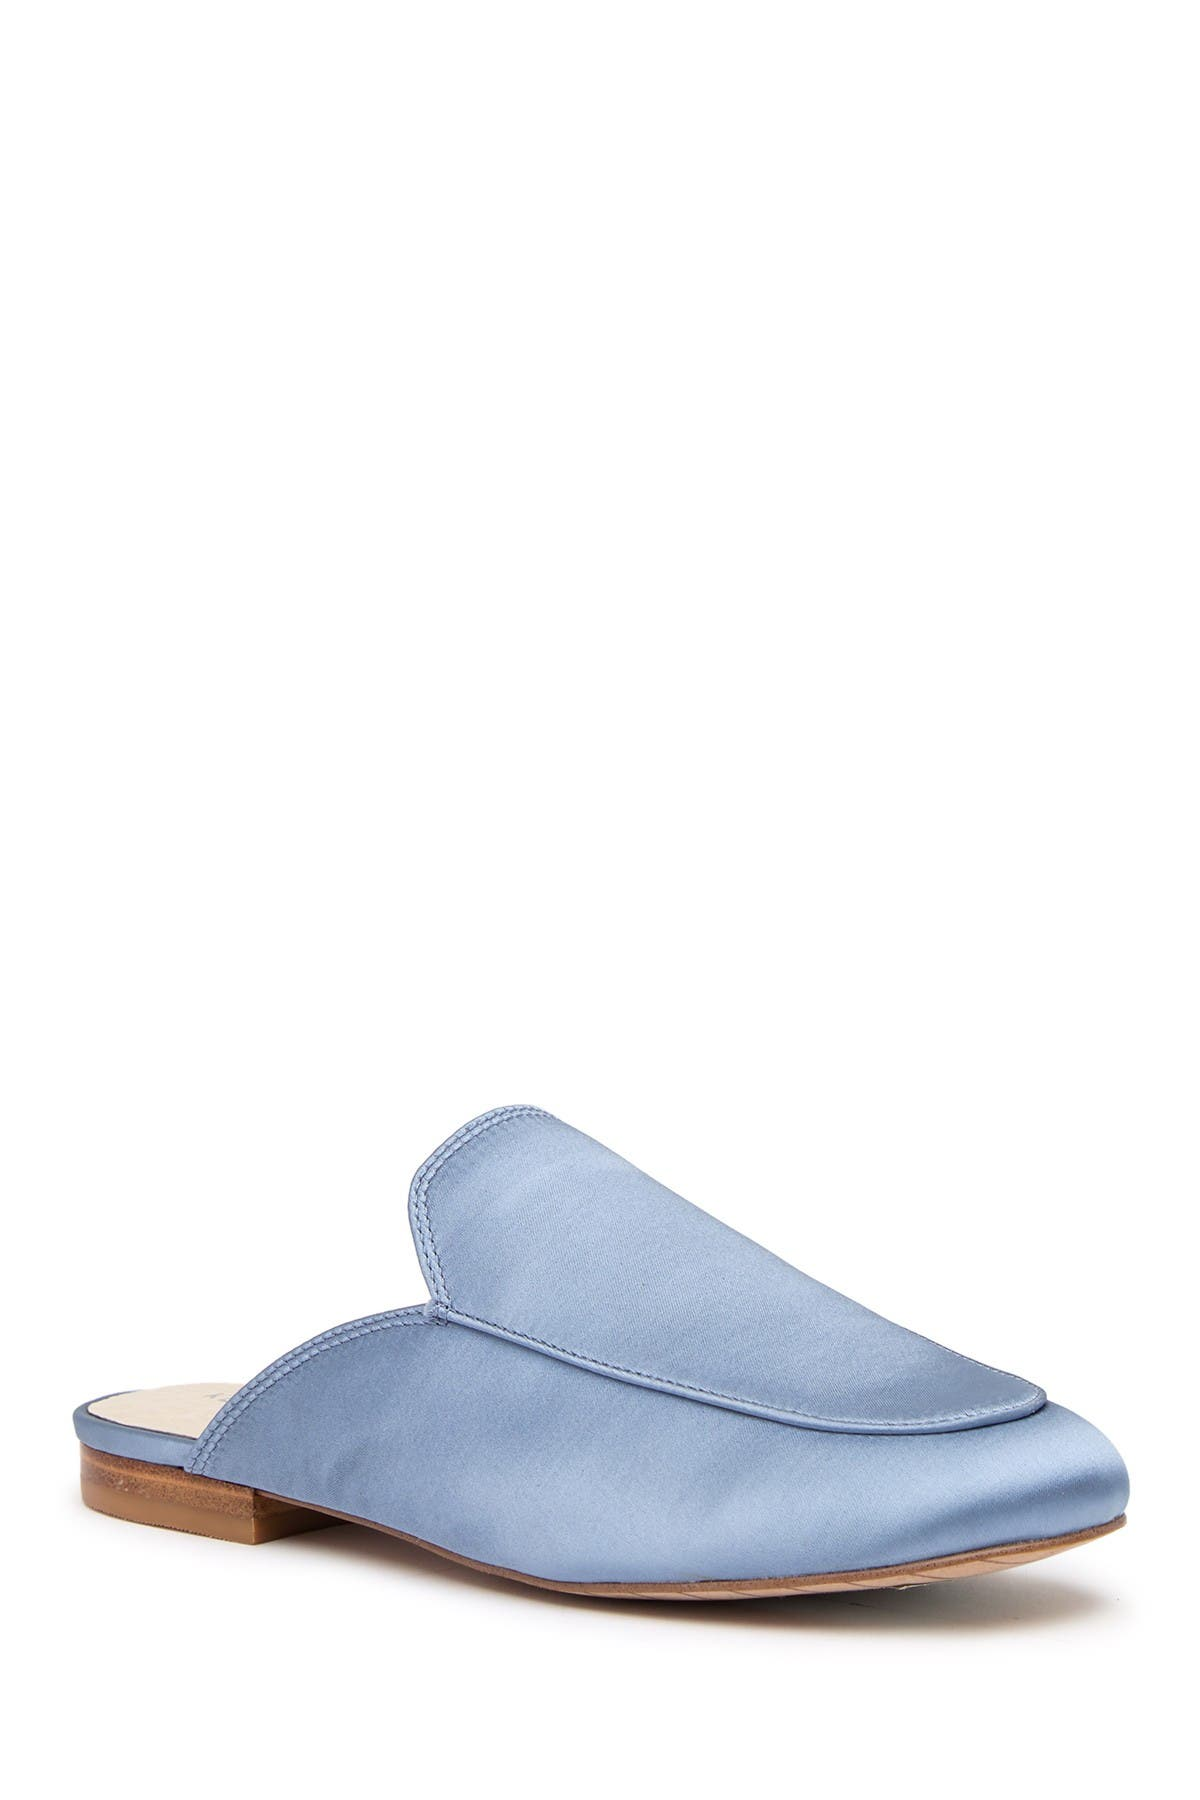 Image of Kenneth Cole New York Wallice Satin Mule